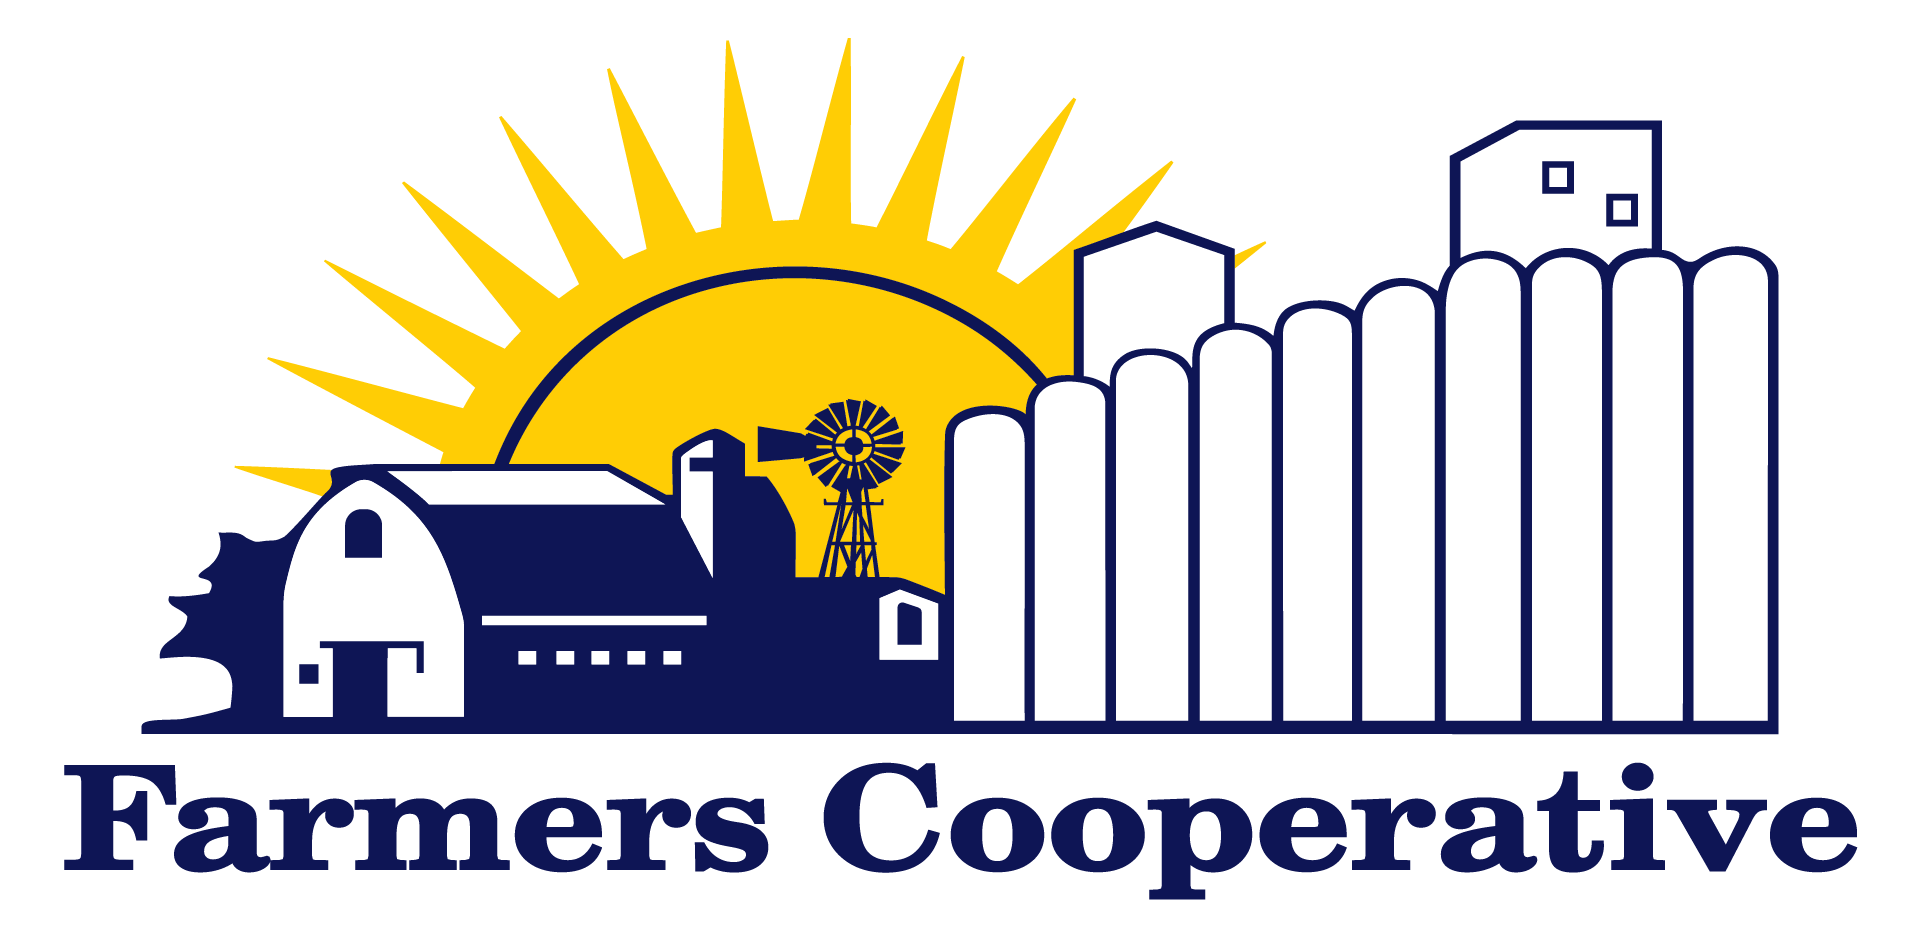 Farmers Cooperative Donated $4,600 to Local FFA Chapters through Grant